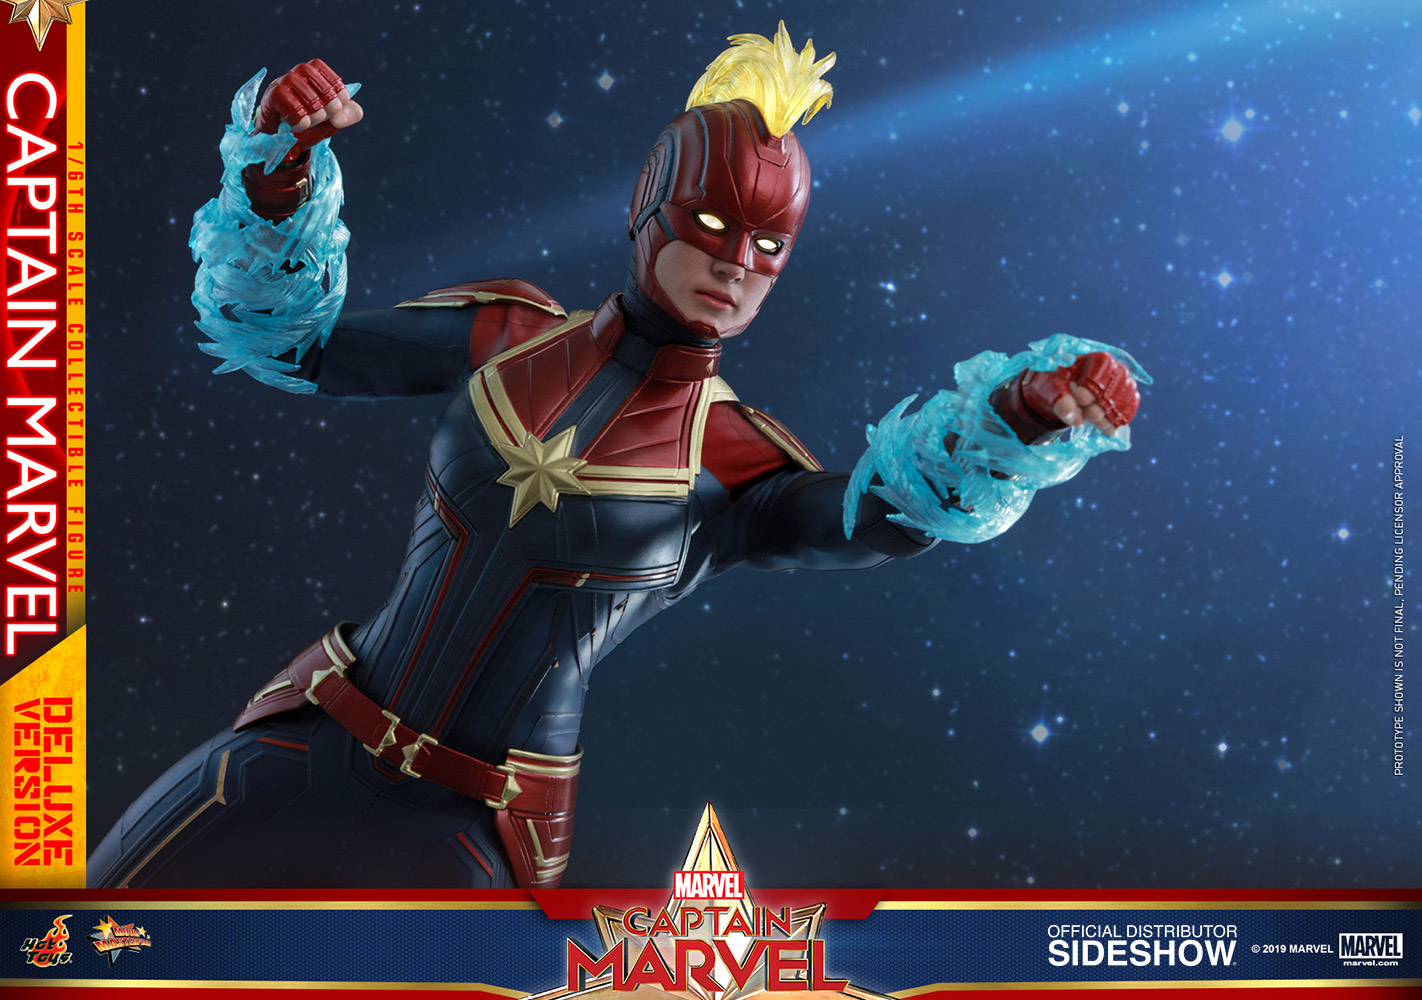 Hot Toys Captain Marvel Deluxe Figure Sideshow Collectibles